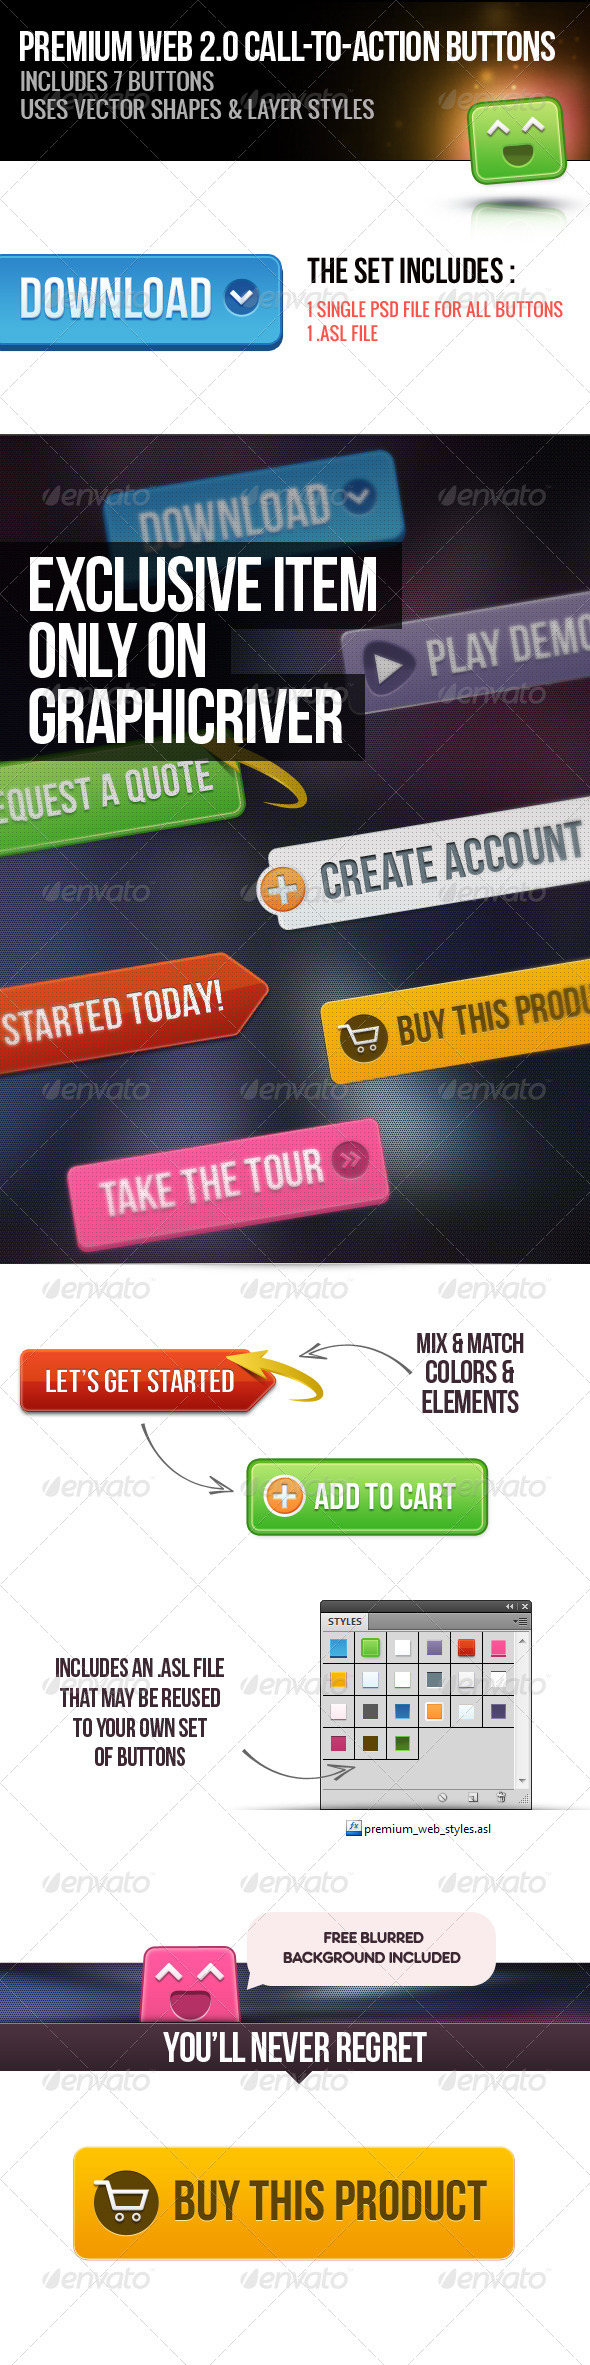 Premium Web 2.0 Call to Action Buttons - Buttons Web Elements